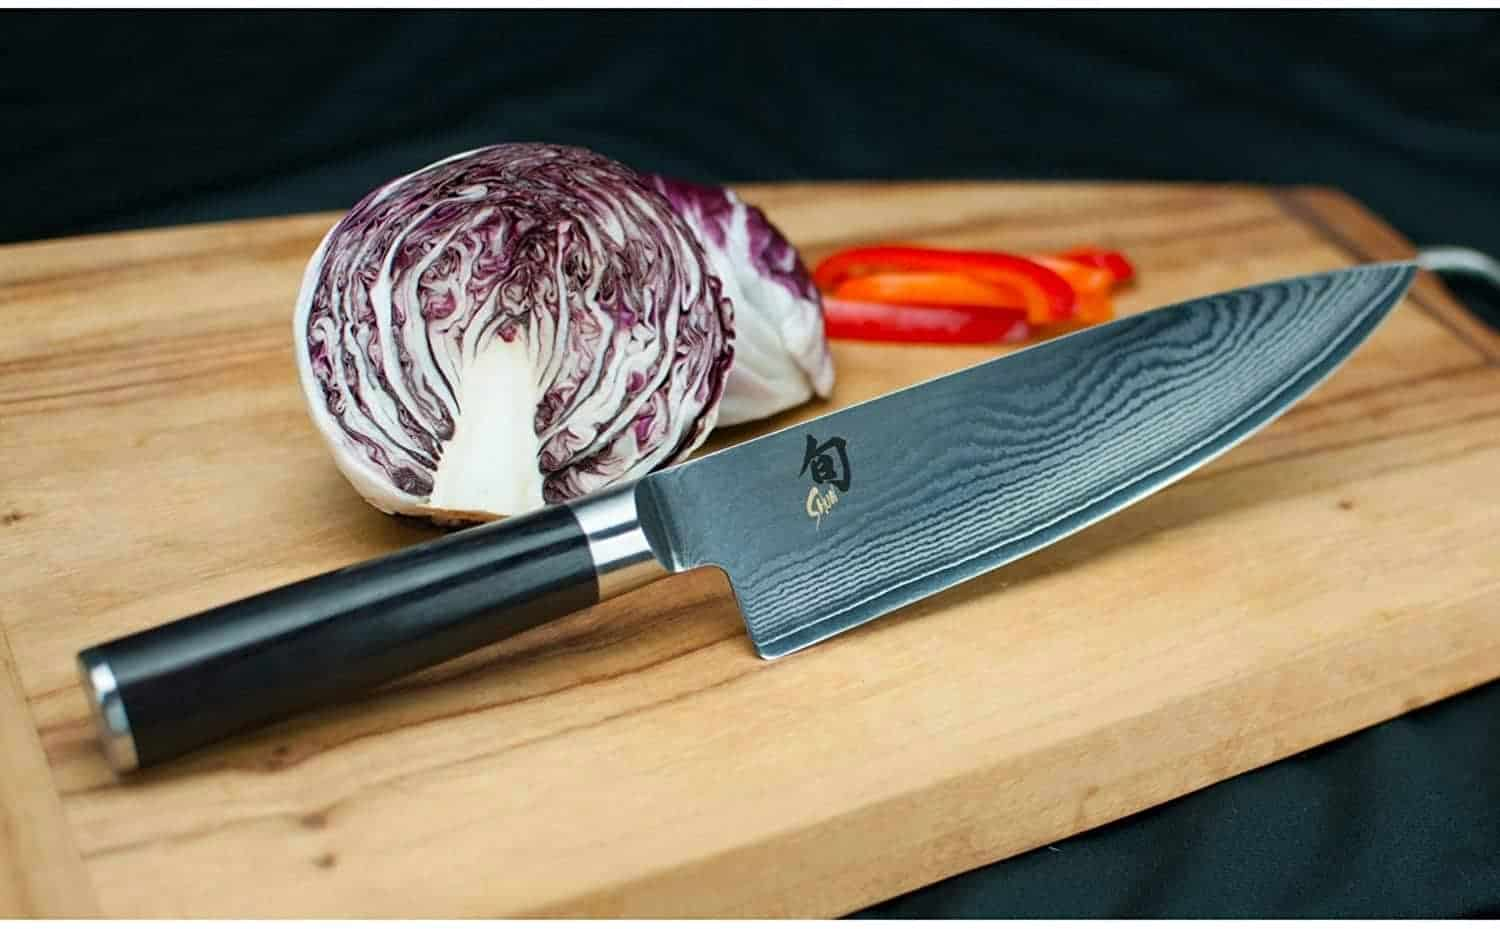 Chef Knife with cabbage